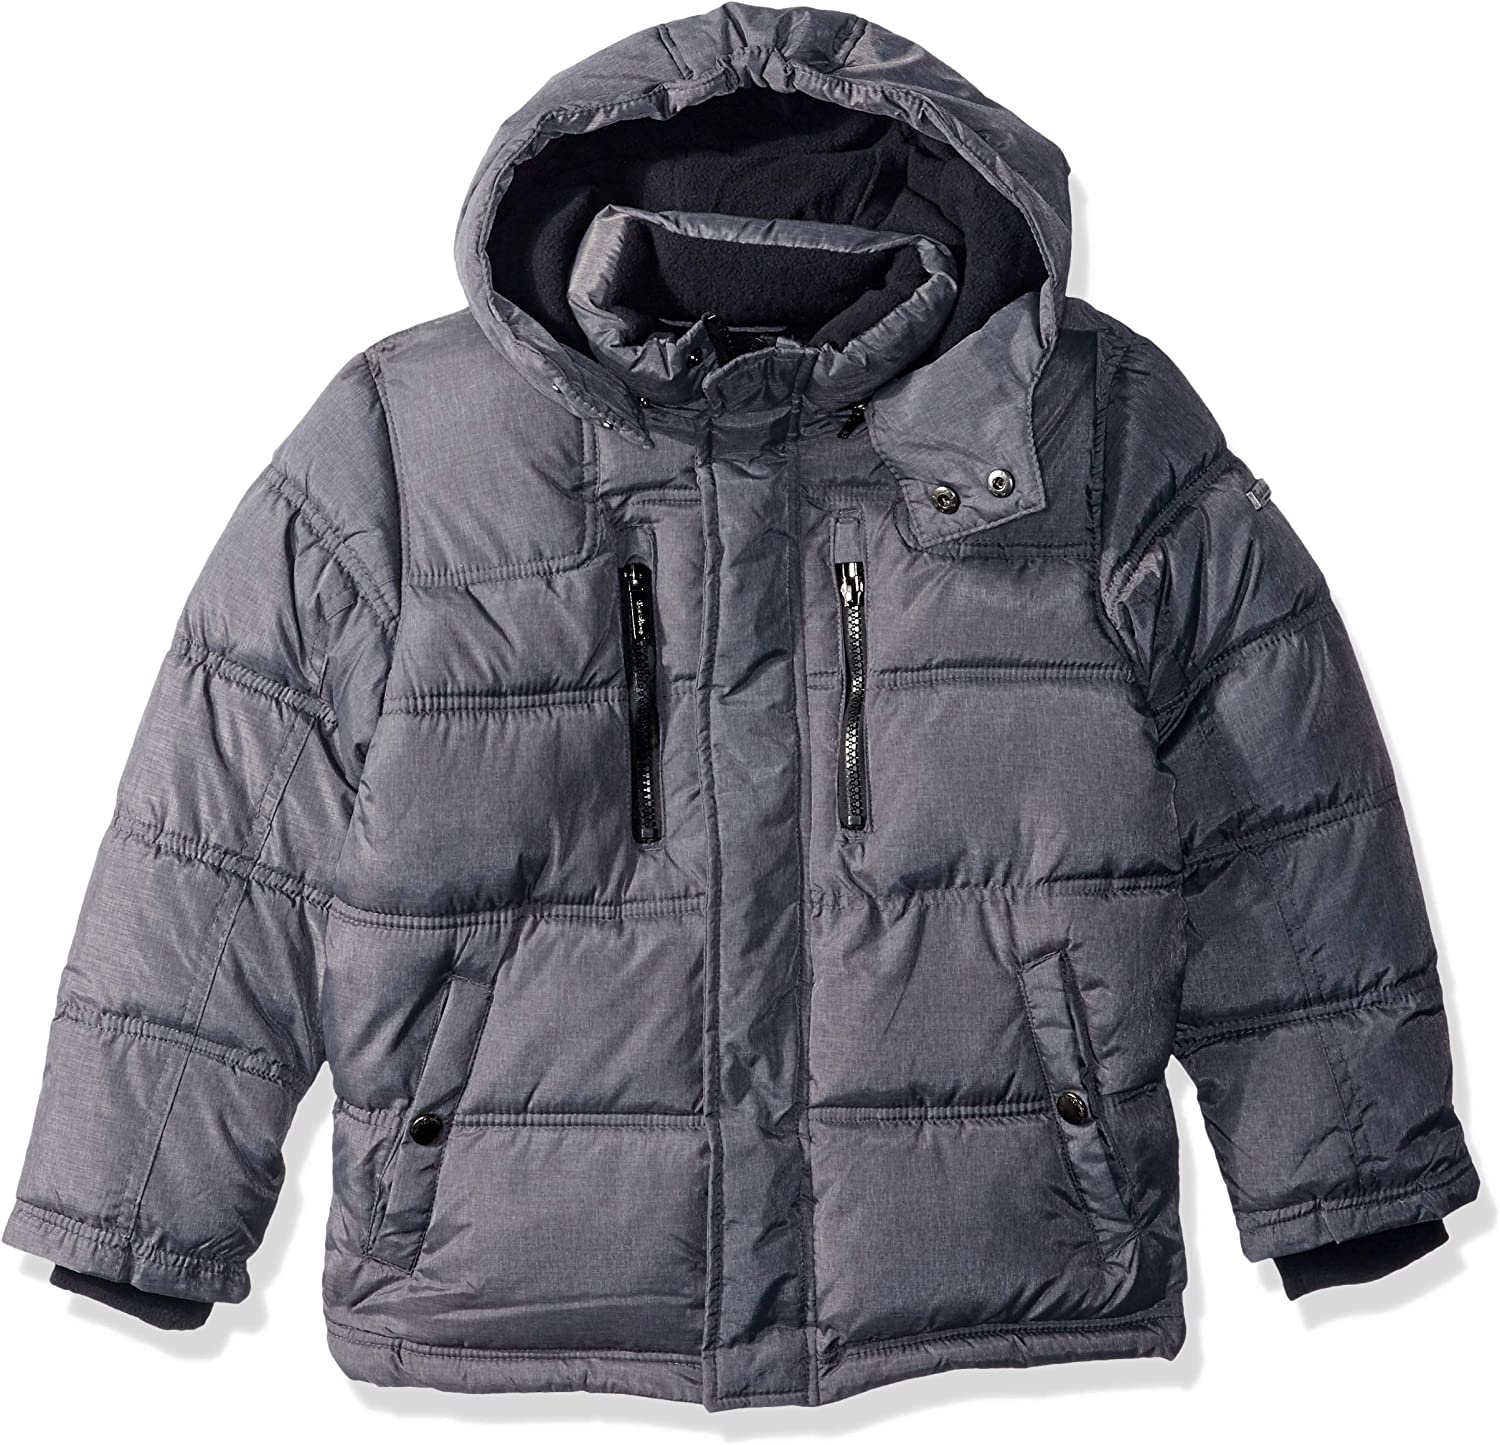 English Laundry Boys' Bubble Jacket with Sherpa Trim